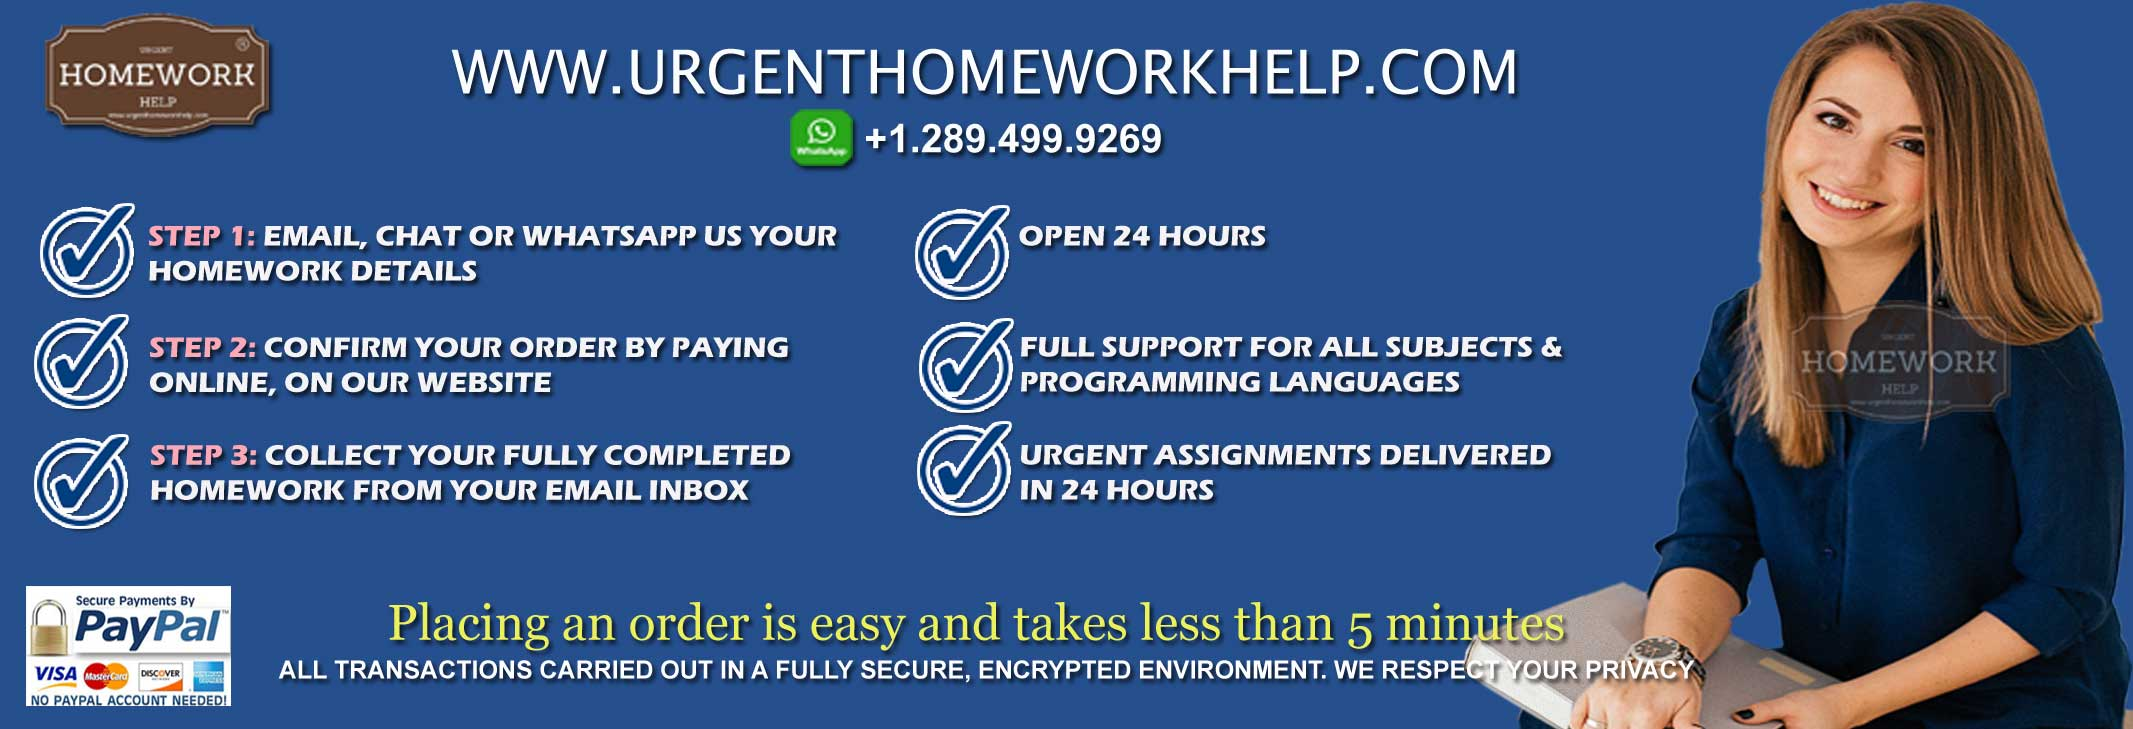 about the best homework help website for college students